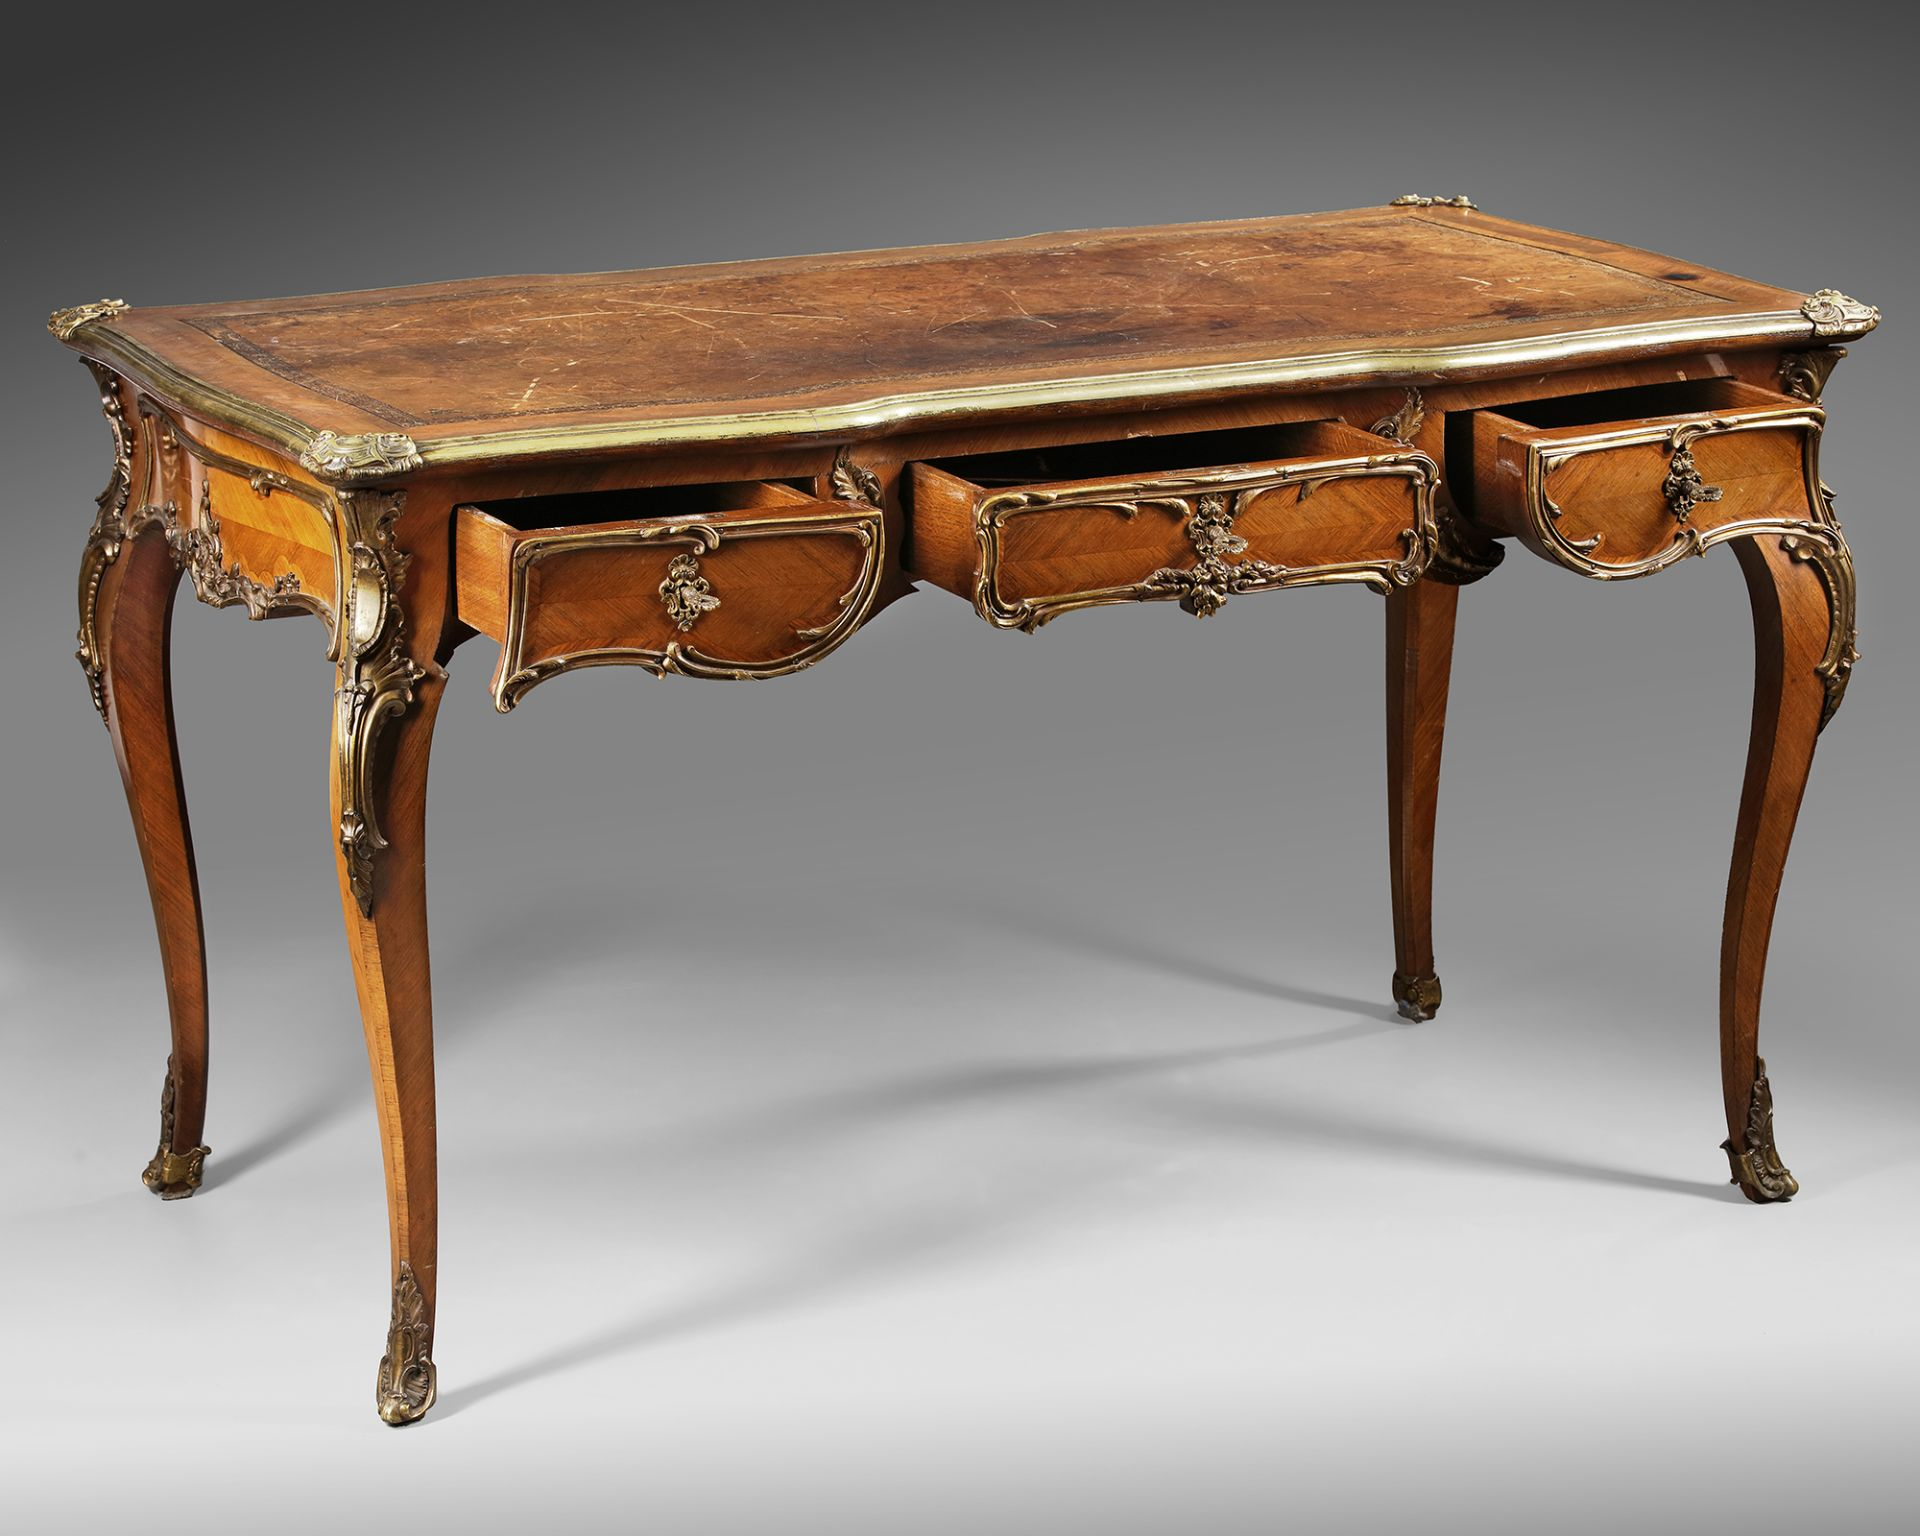 A FRENCH LOUIS XV DESK, 19TH CENTURY - Image 5 of 5